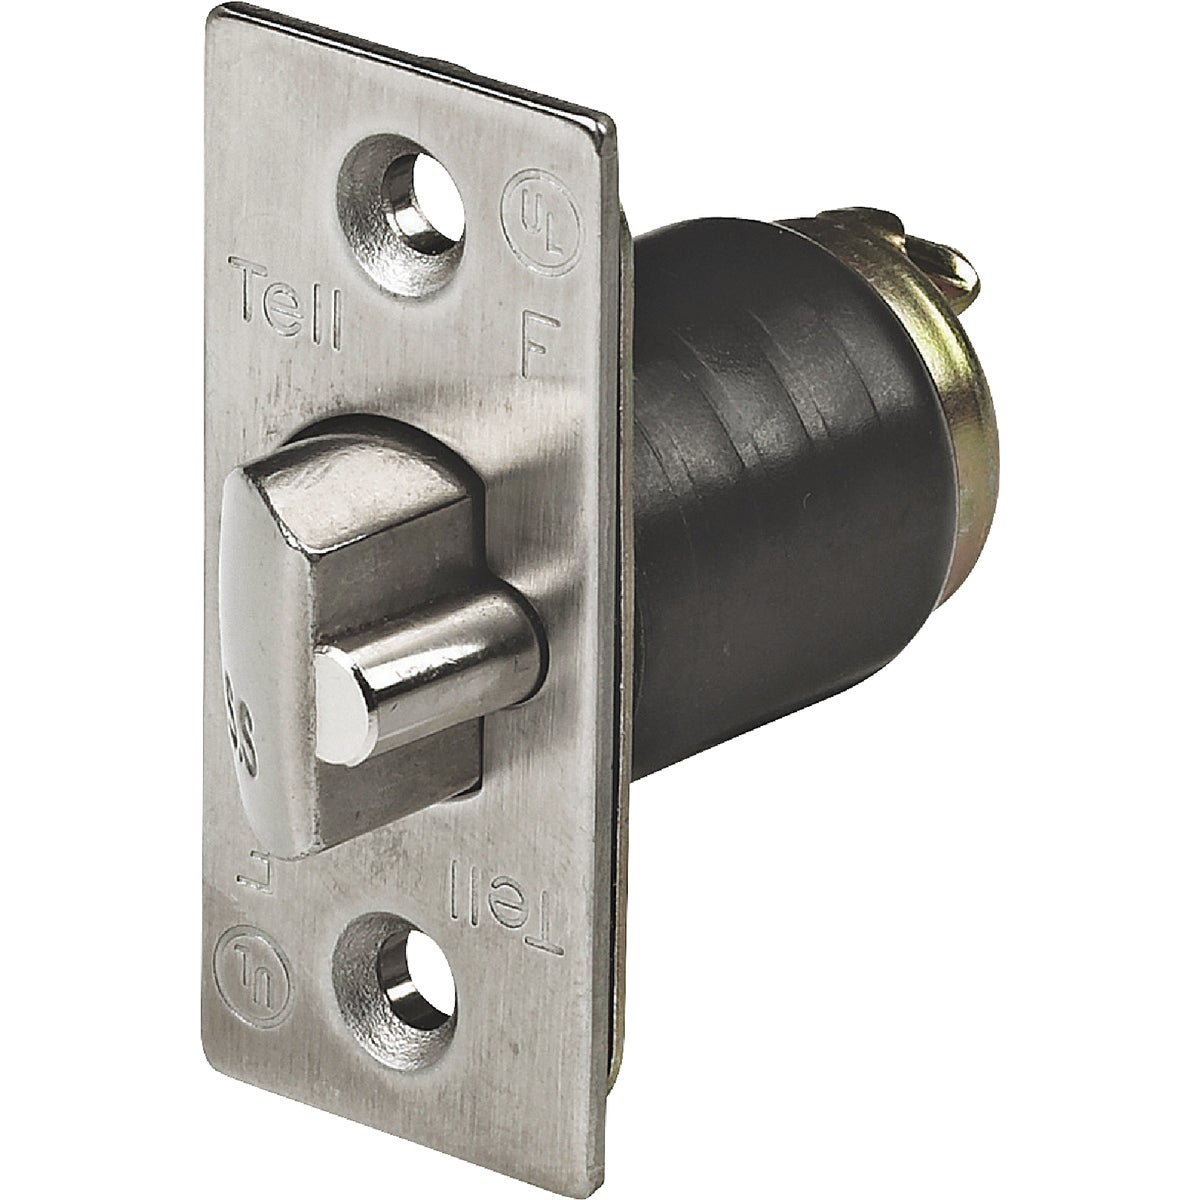 2-3/4 SV GUARDED LATCH - CL100213 by Tell Mfg Inc